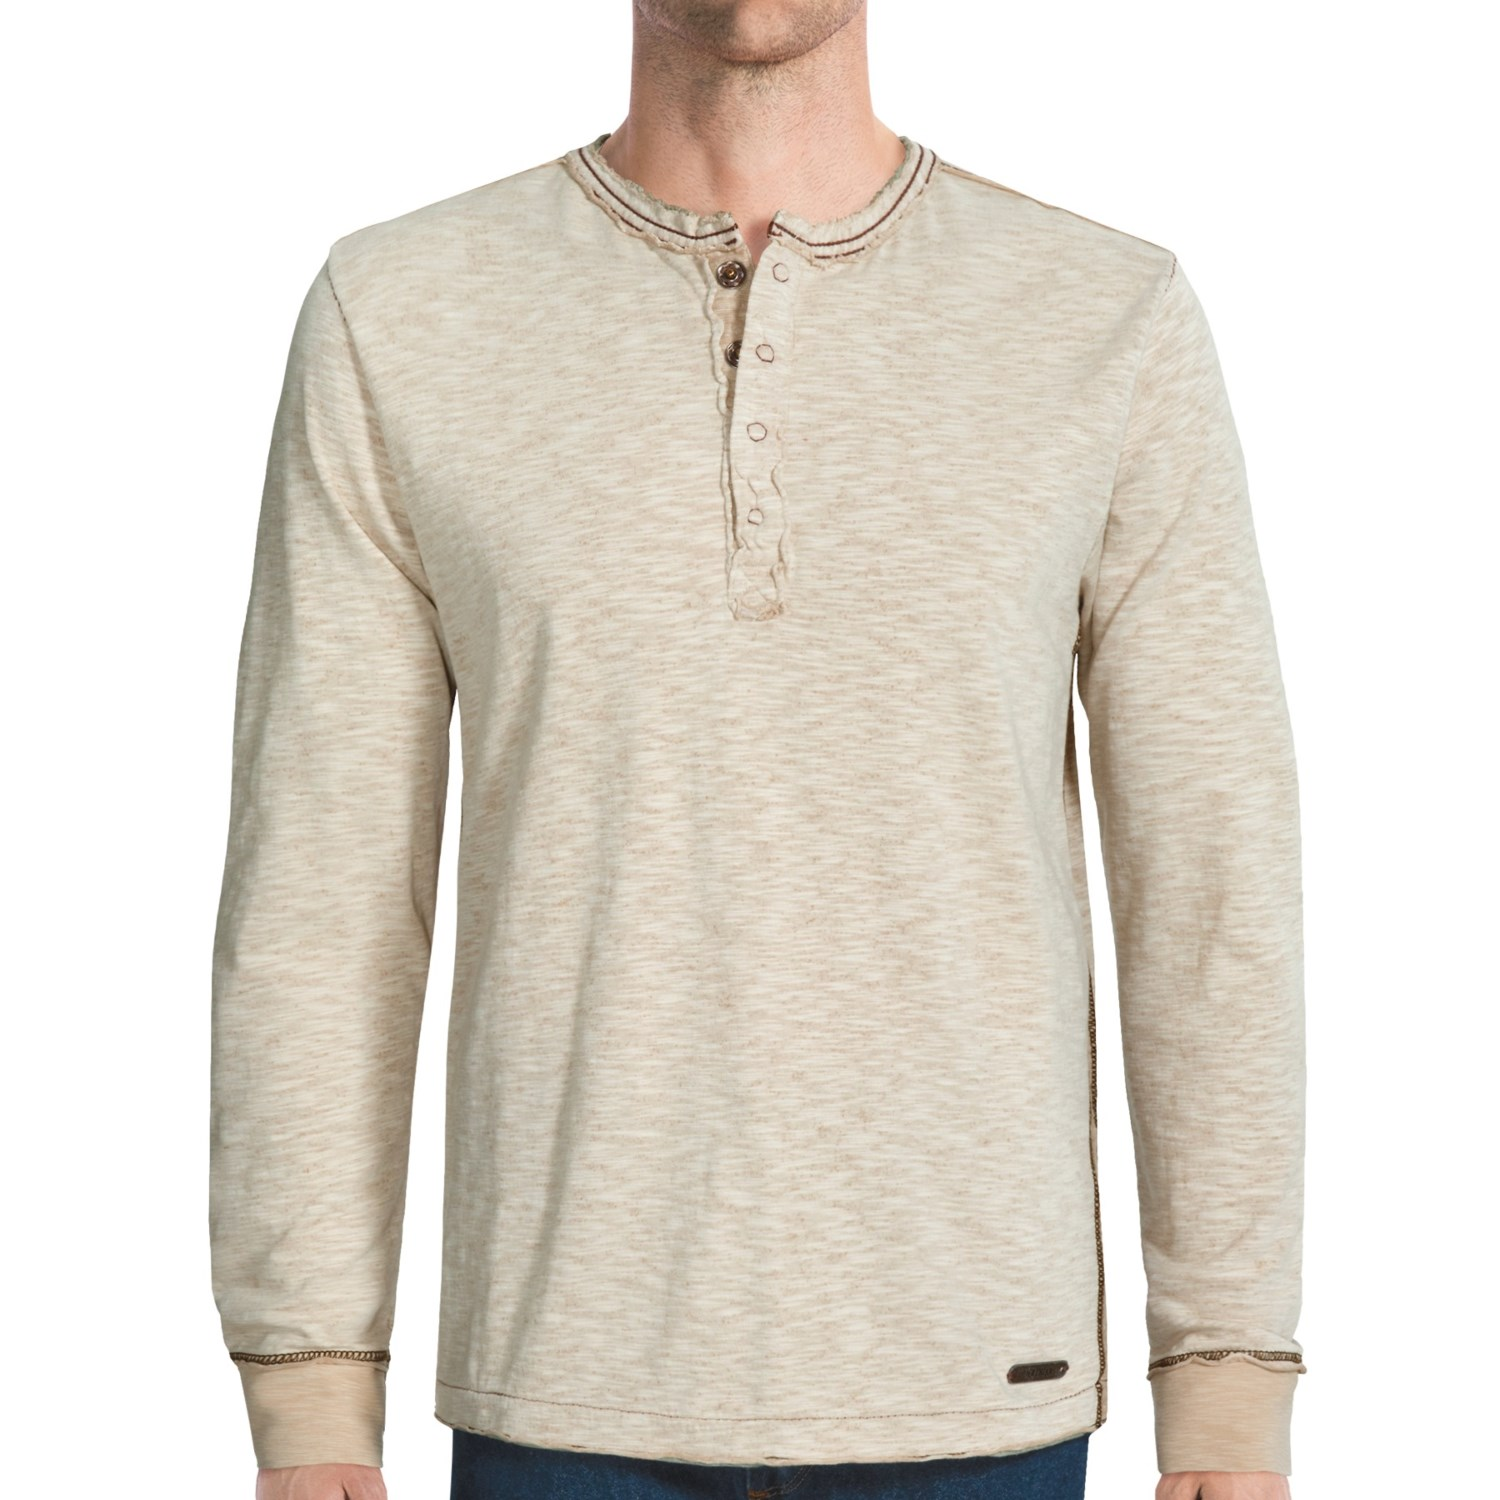 Jeremiah Mercer Henley Shirt Two Tone Cotton Jersey Slub